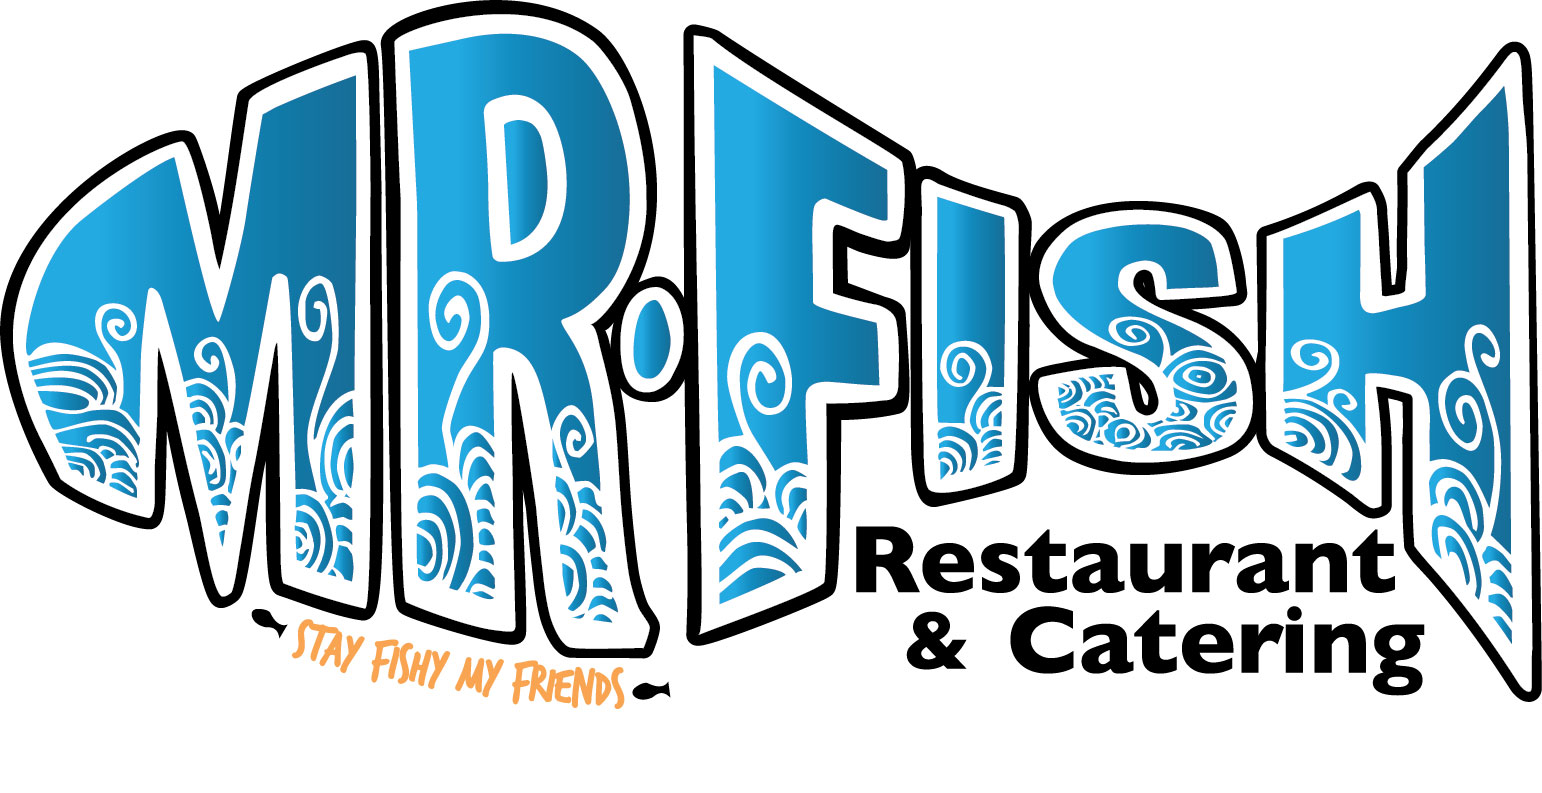 Online Catering Form | Mr Fish | Seafood Restaurant & Fish